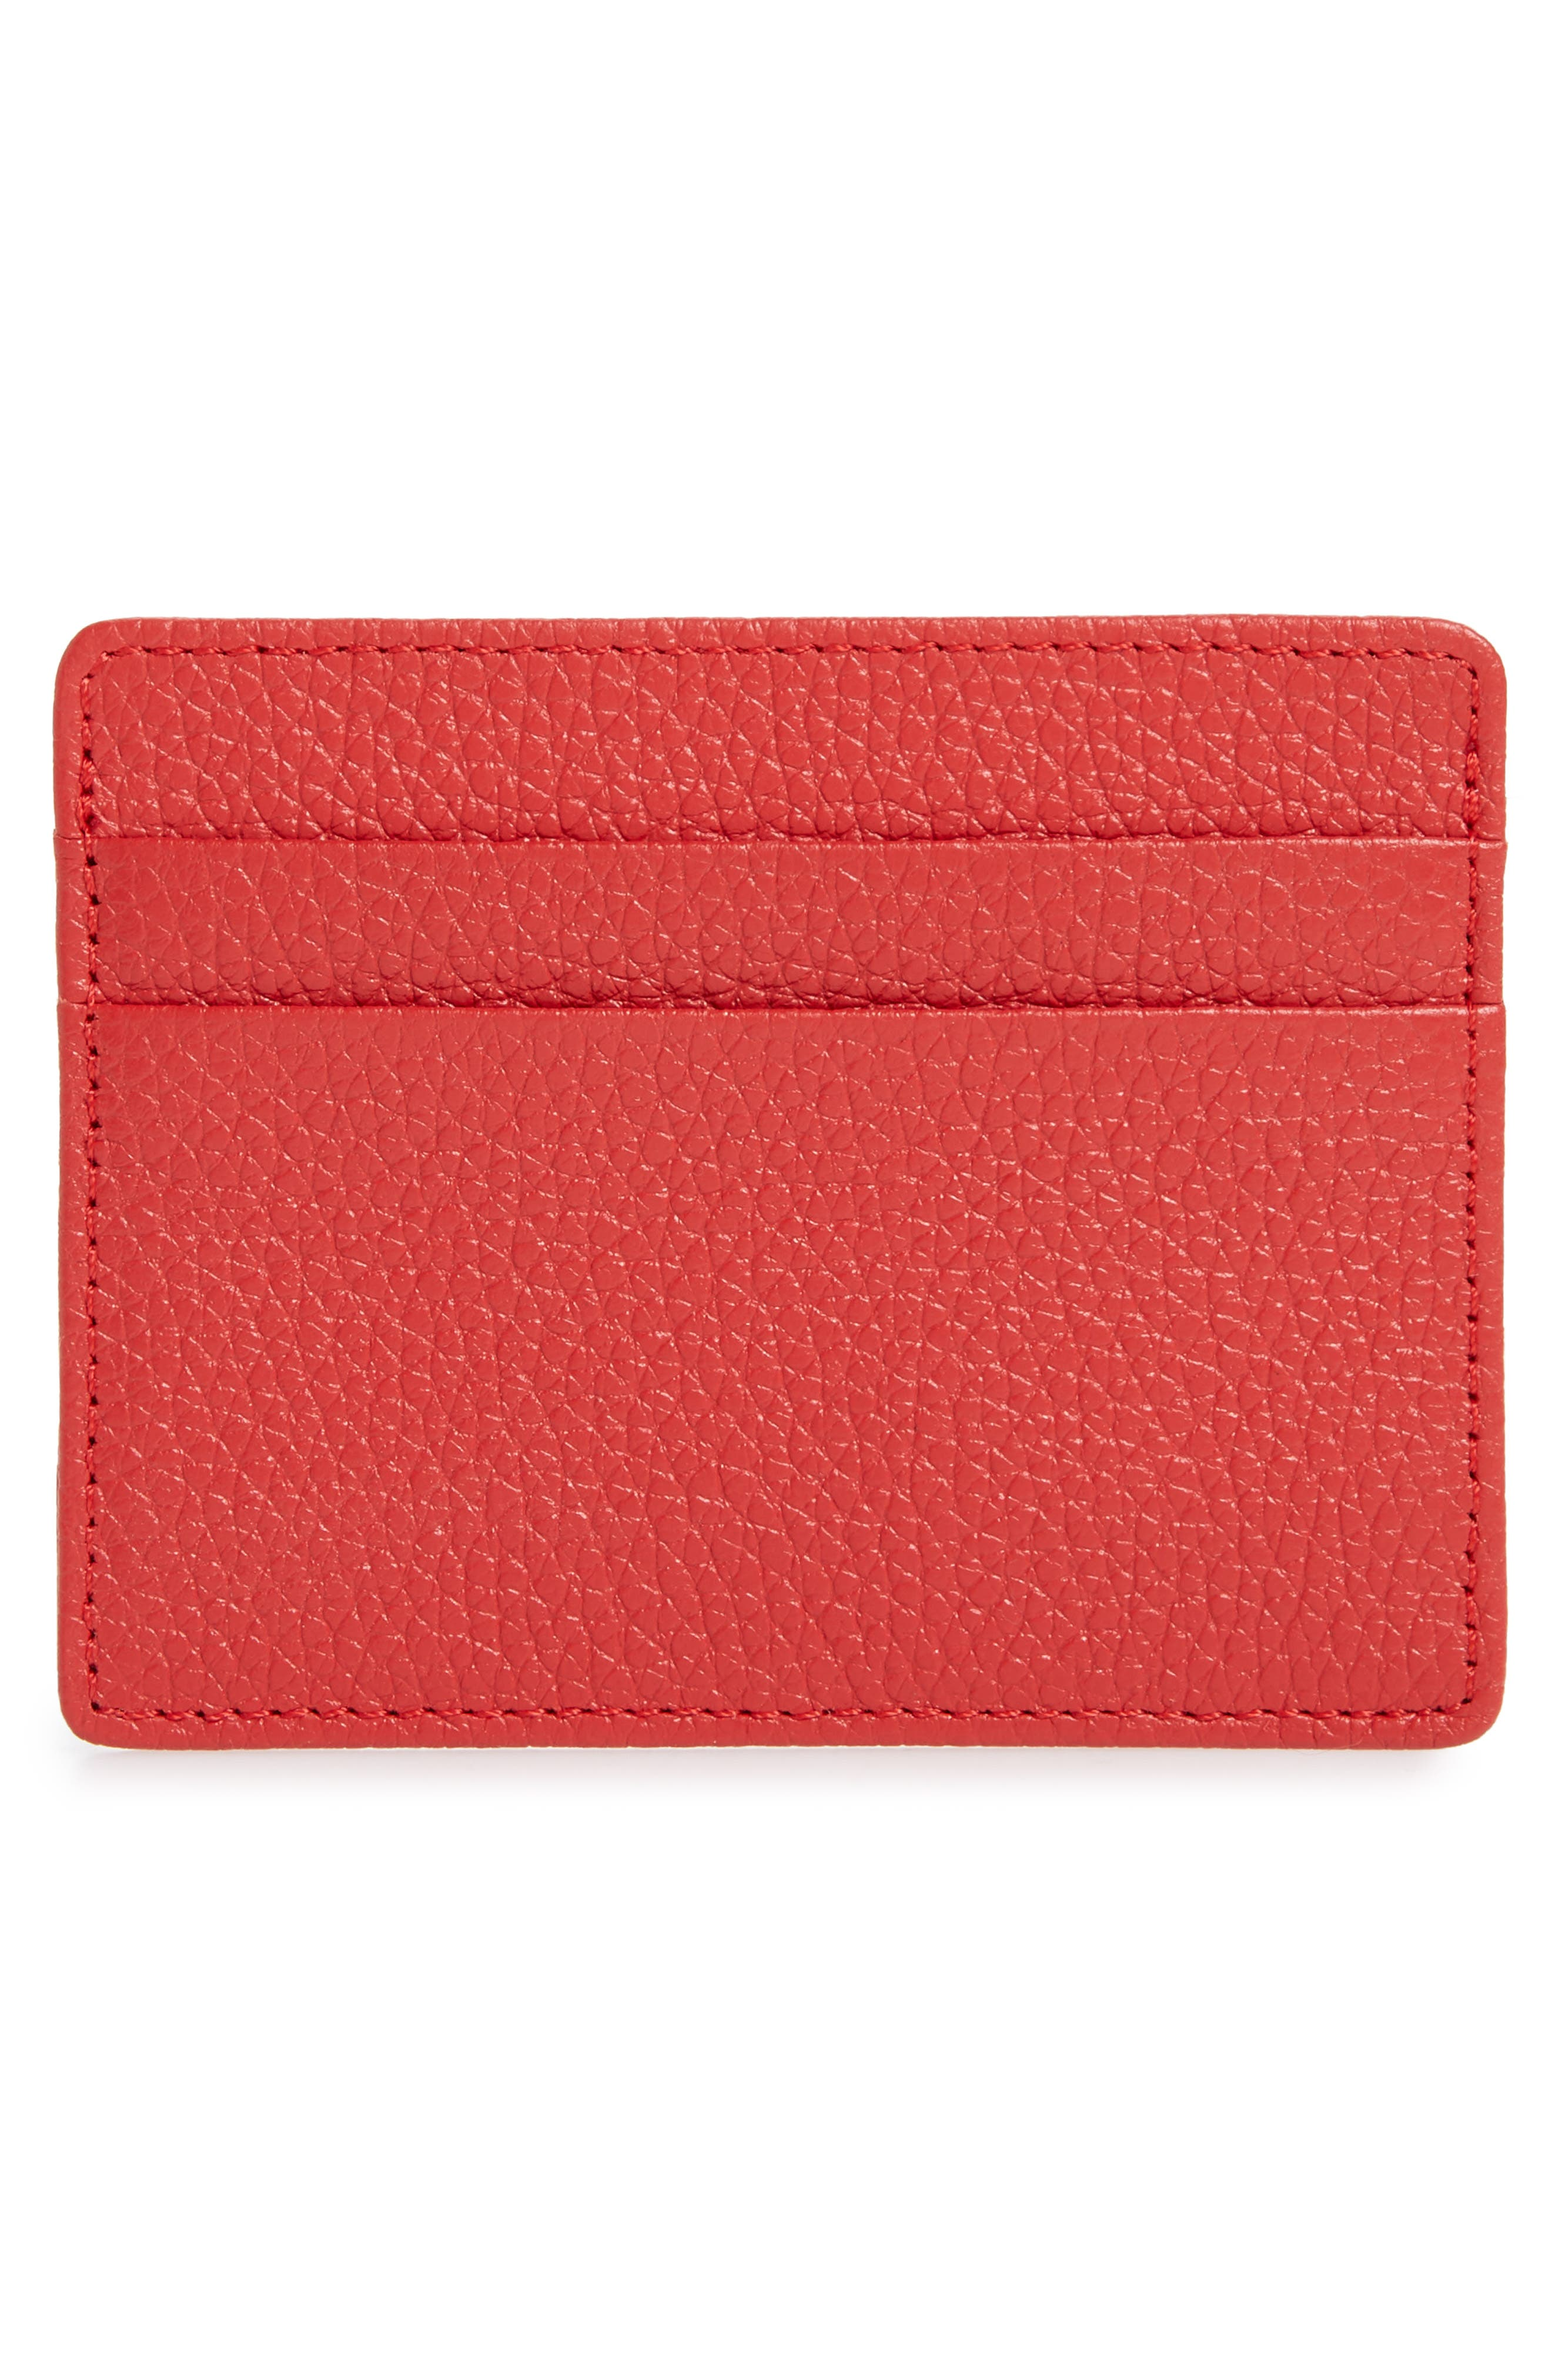 ,                             Jamie Leather Card Case,                             Alternate thumbnail 54, color,                             610